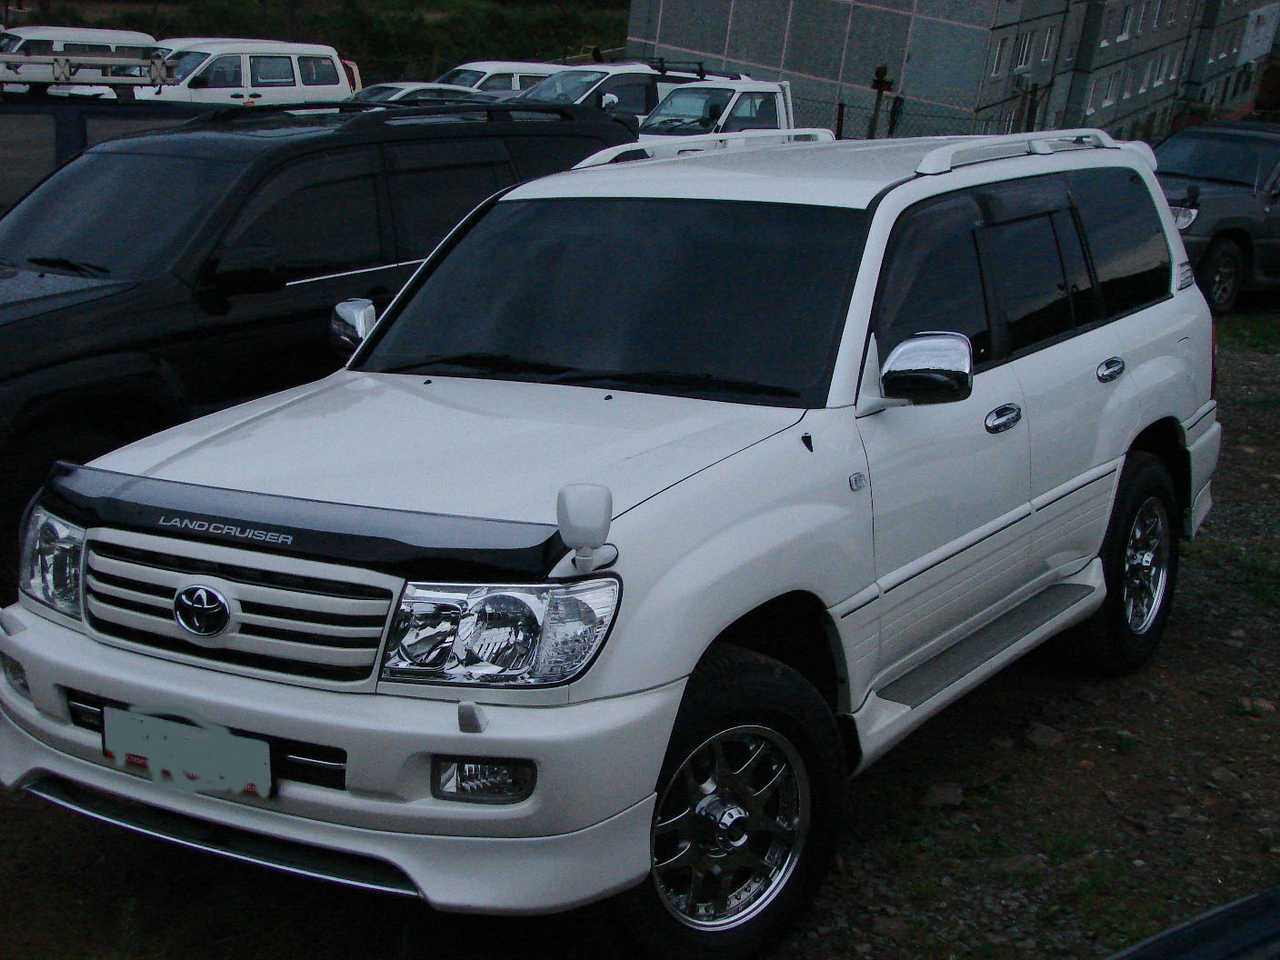 2005 toyota land cruiser for sale 4700cc gasoline automatic for sale. Black Bedroom Furniture Sets. Home Design Ideas